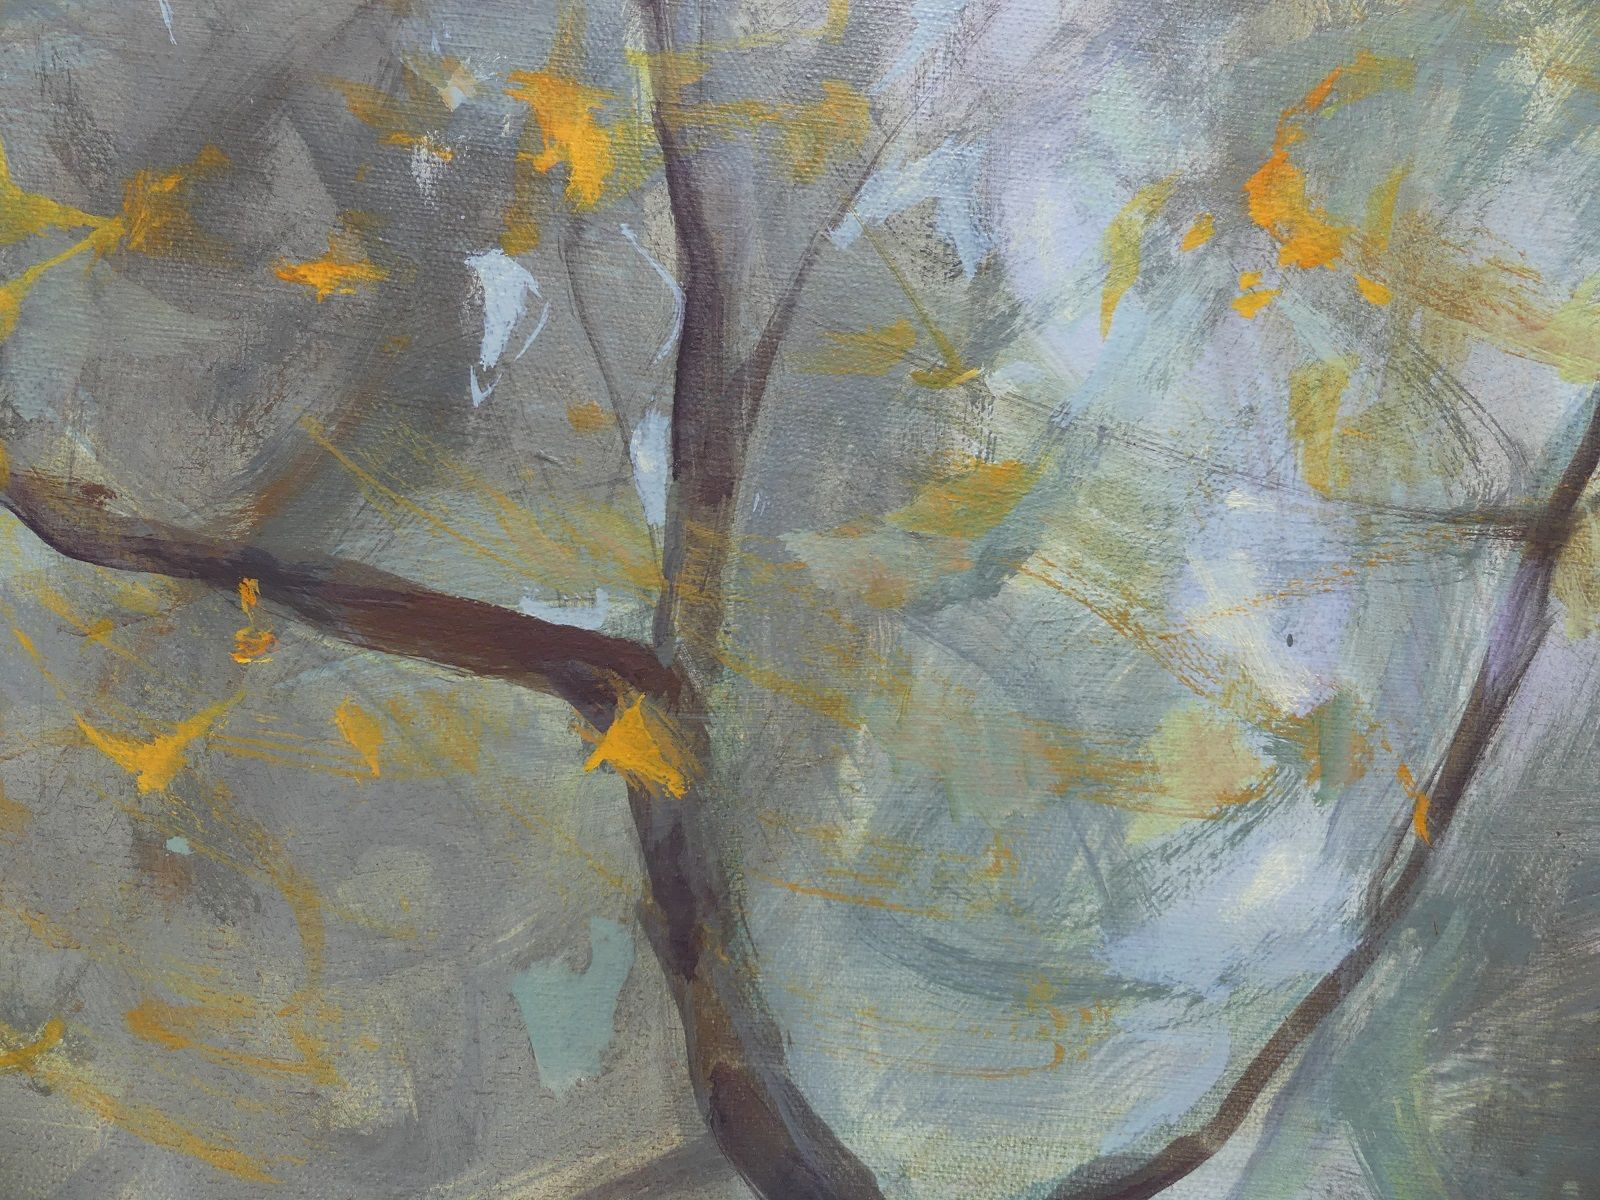 Aspens' and Willows' Branches in Autumn ,Valérie de Sarrieu,Contemporary painting, detail 1